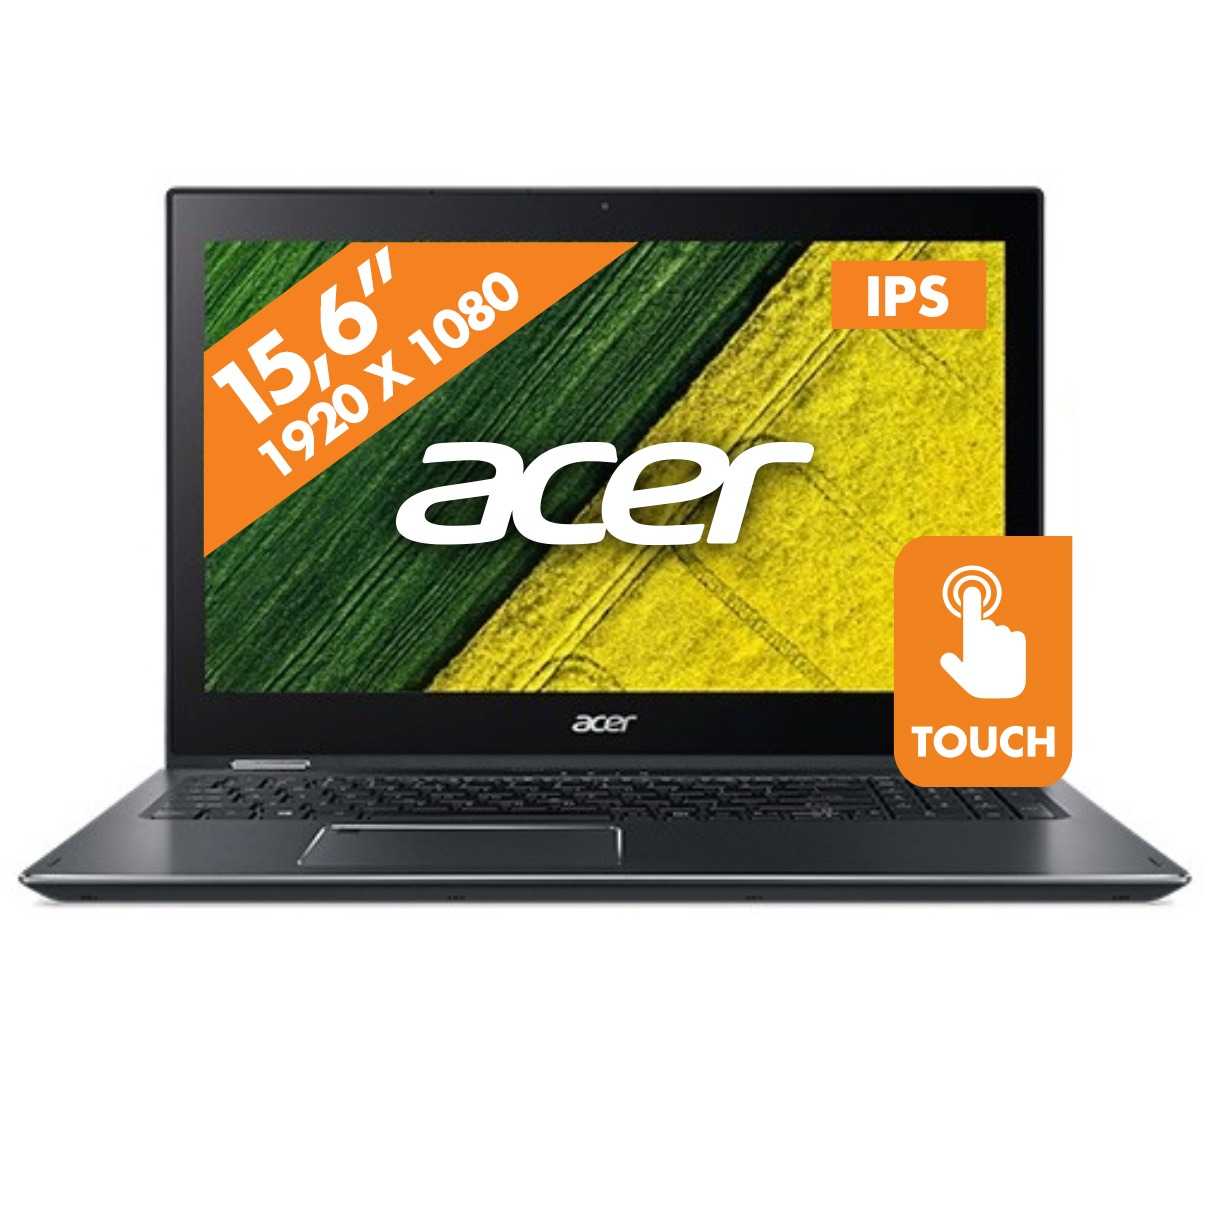 Afbeelding van Acer 2-in-1 laptop Spin 5 SP515-51GN-80AS